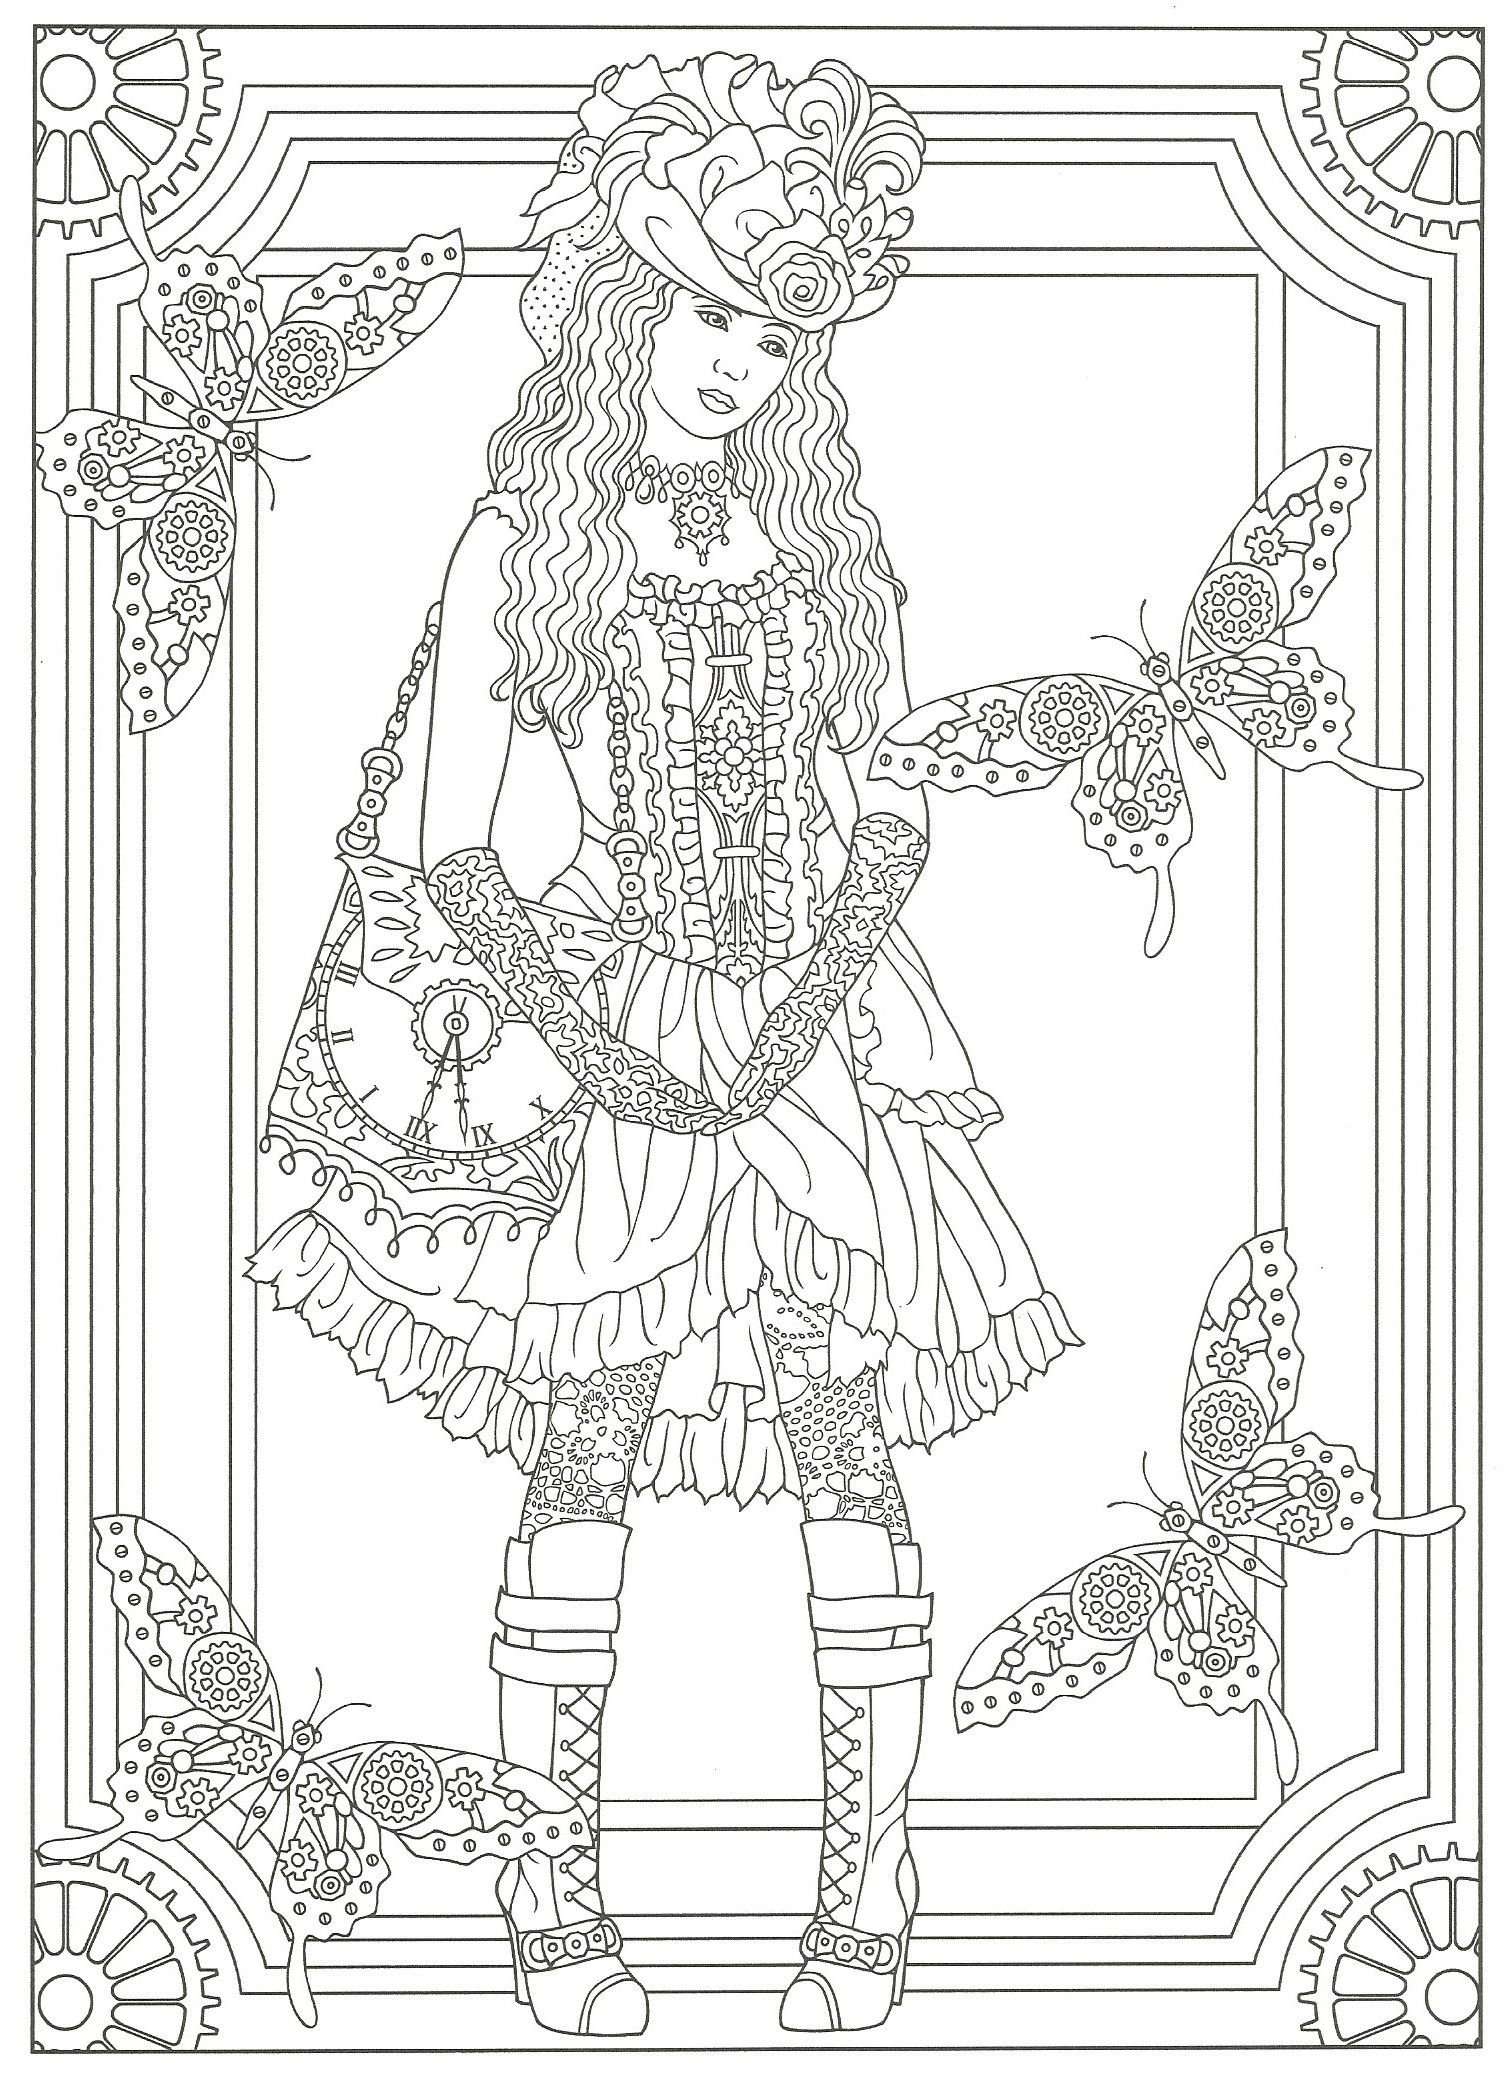 creative coloring pages for adults - steampunk adult coloring artwork by marty noble creative